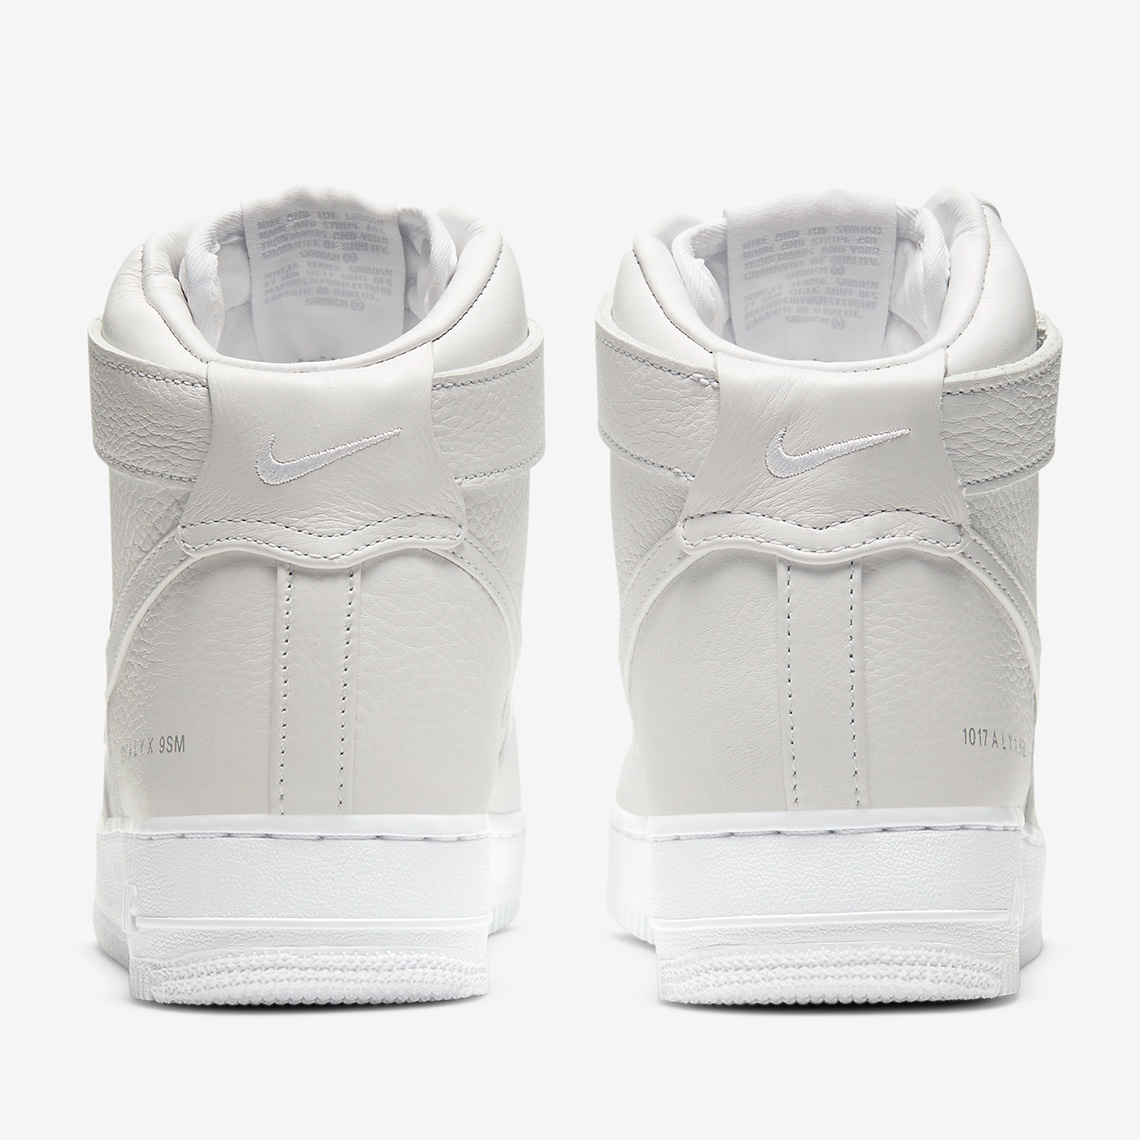 Air Force 1 High x 1017 ALYX 9SM White